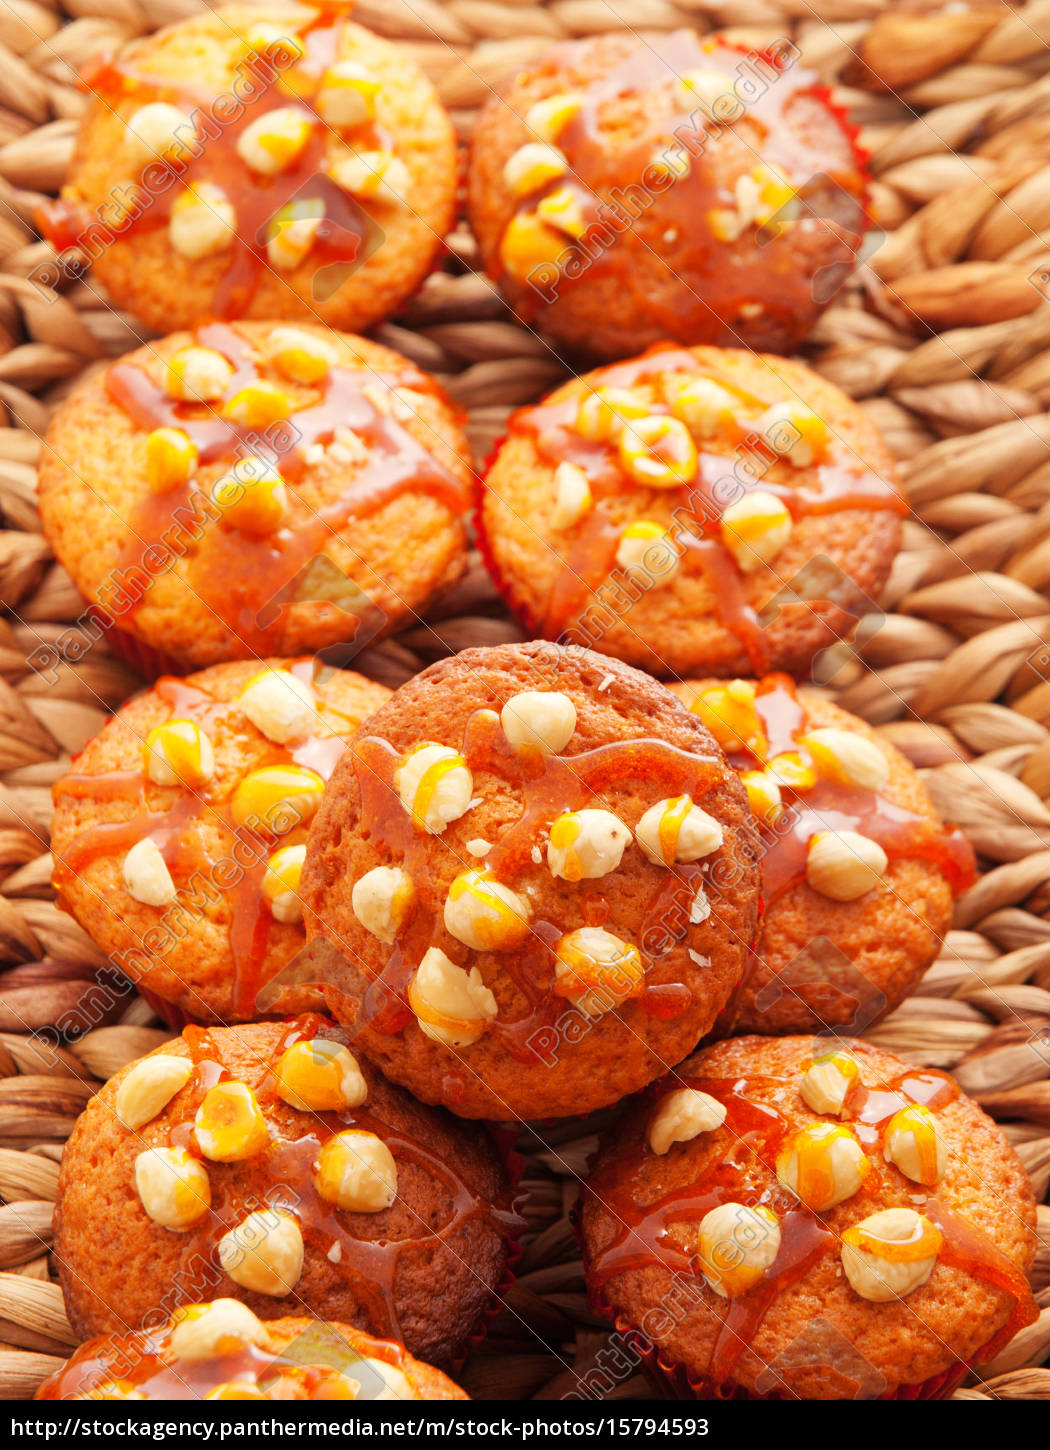 cupcakes, with, hazelnuts, cupcakes, with, hazelnuts, cupcakes, with - 15794593